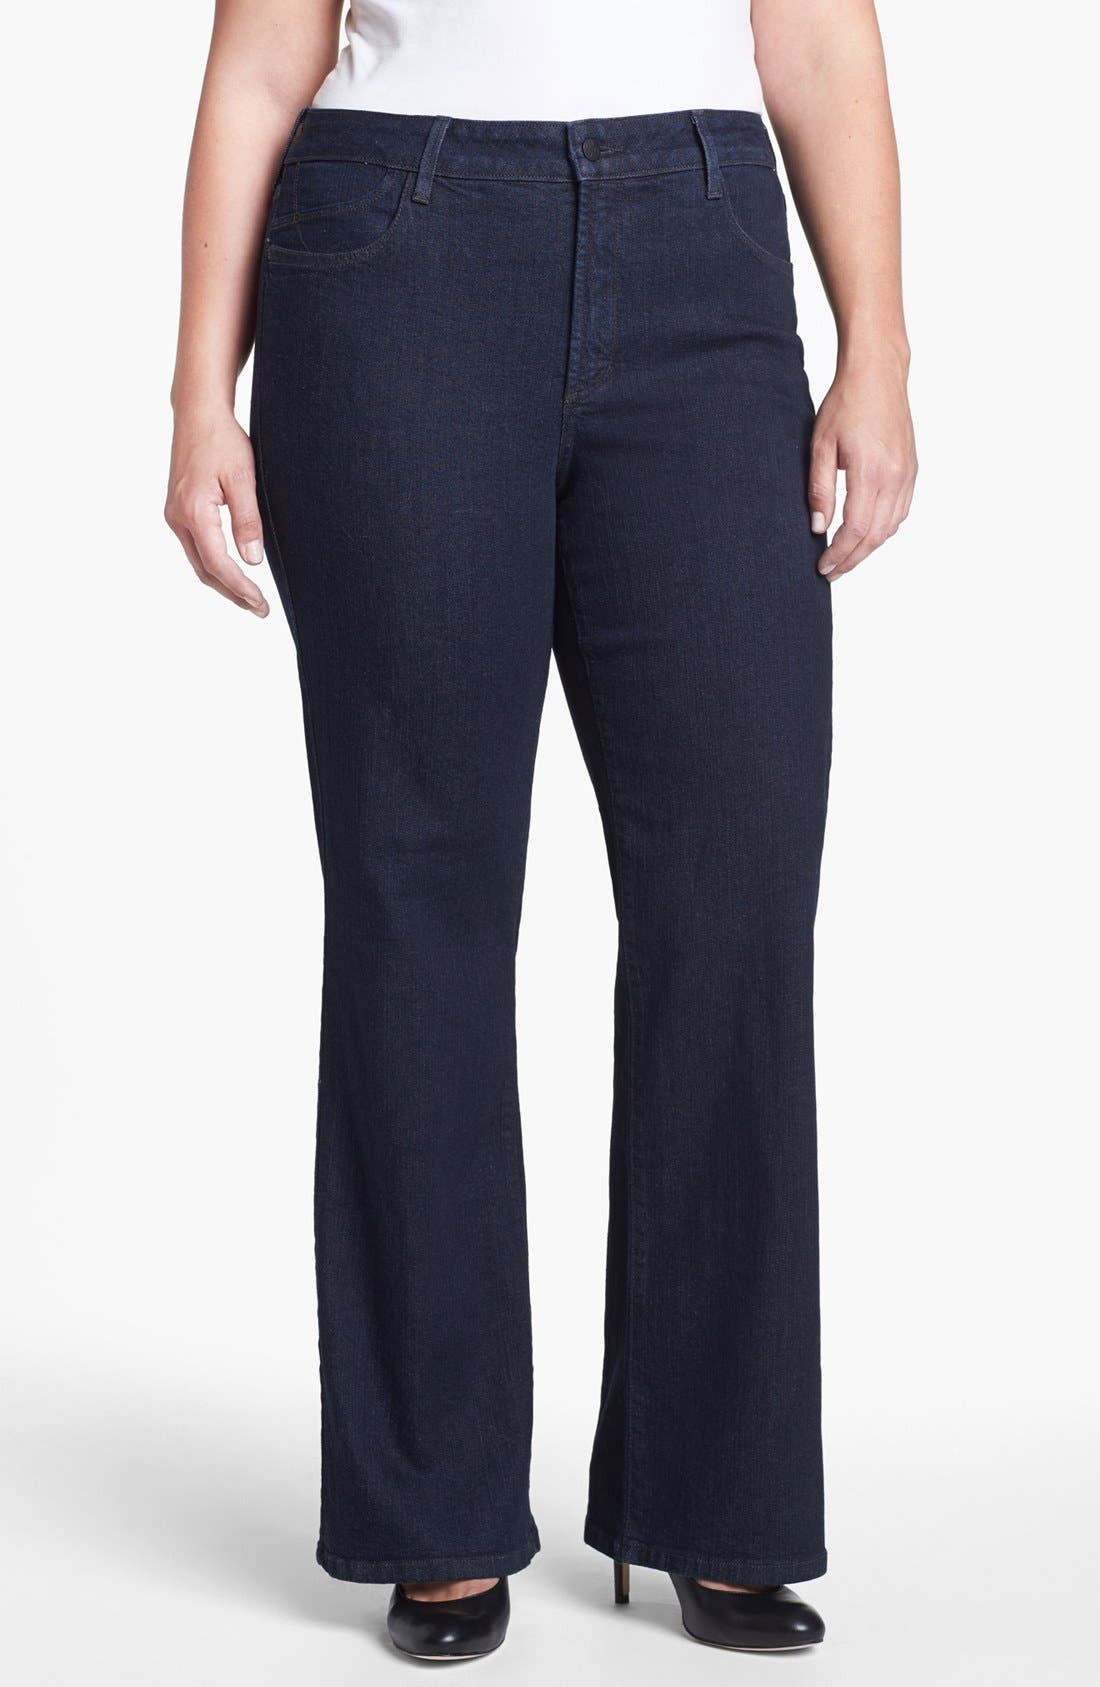 Alternate Image 1 Selected - NYDJ 'Sarah' Stretch Bootcut Jeans (Dark Enzyme) (Plus Size)